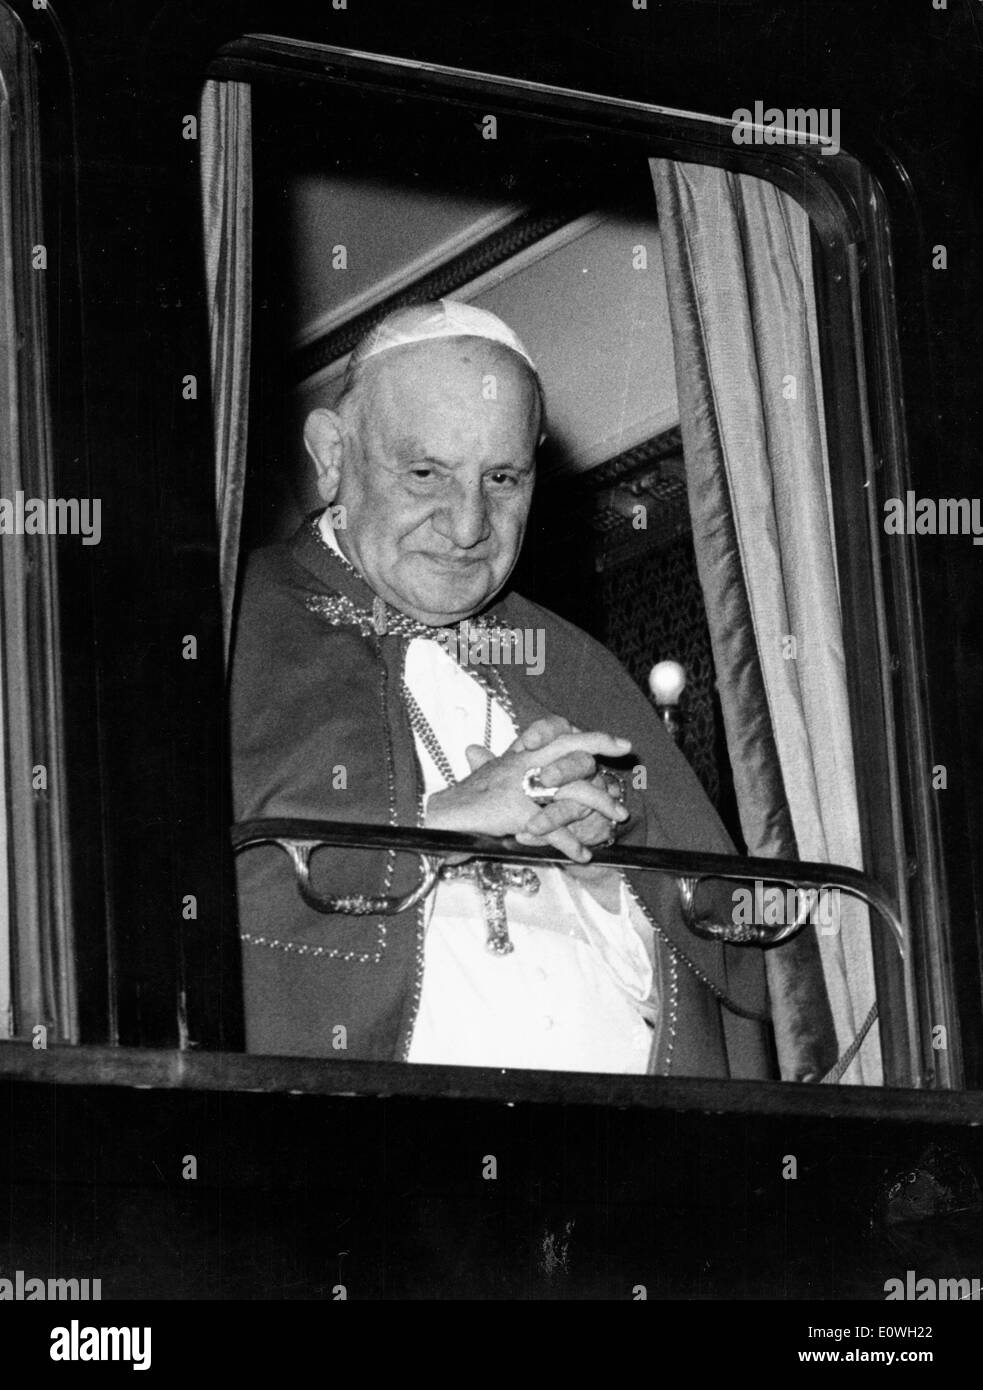 Pope John XXIII on his pilgrimage around Italy - Stock Image